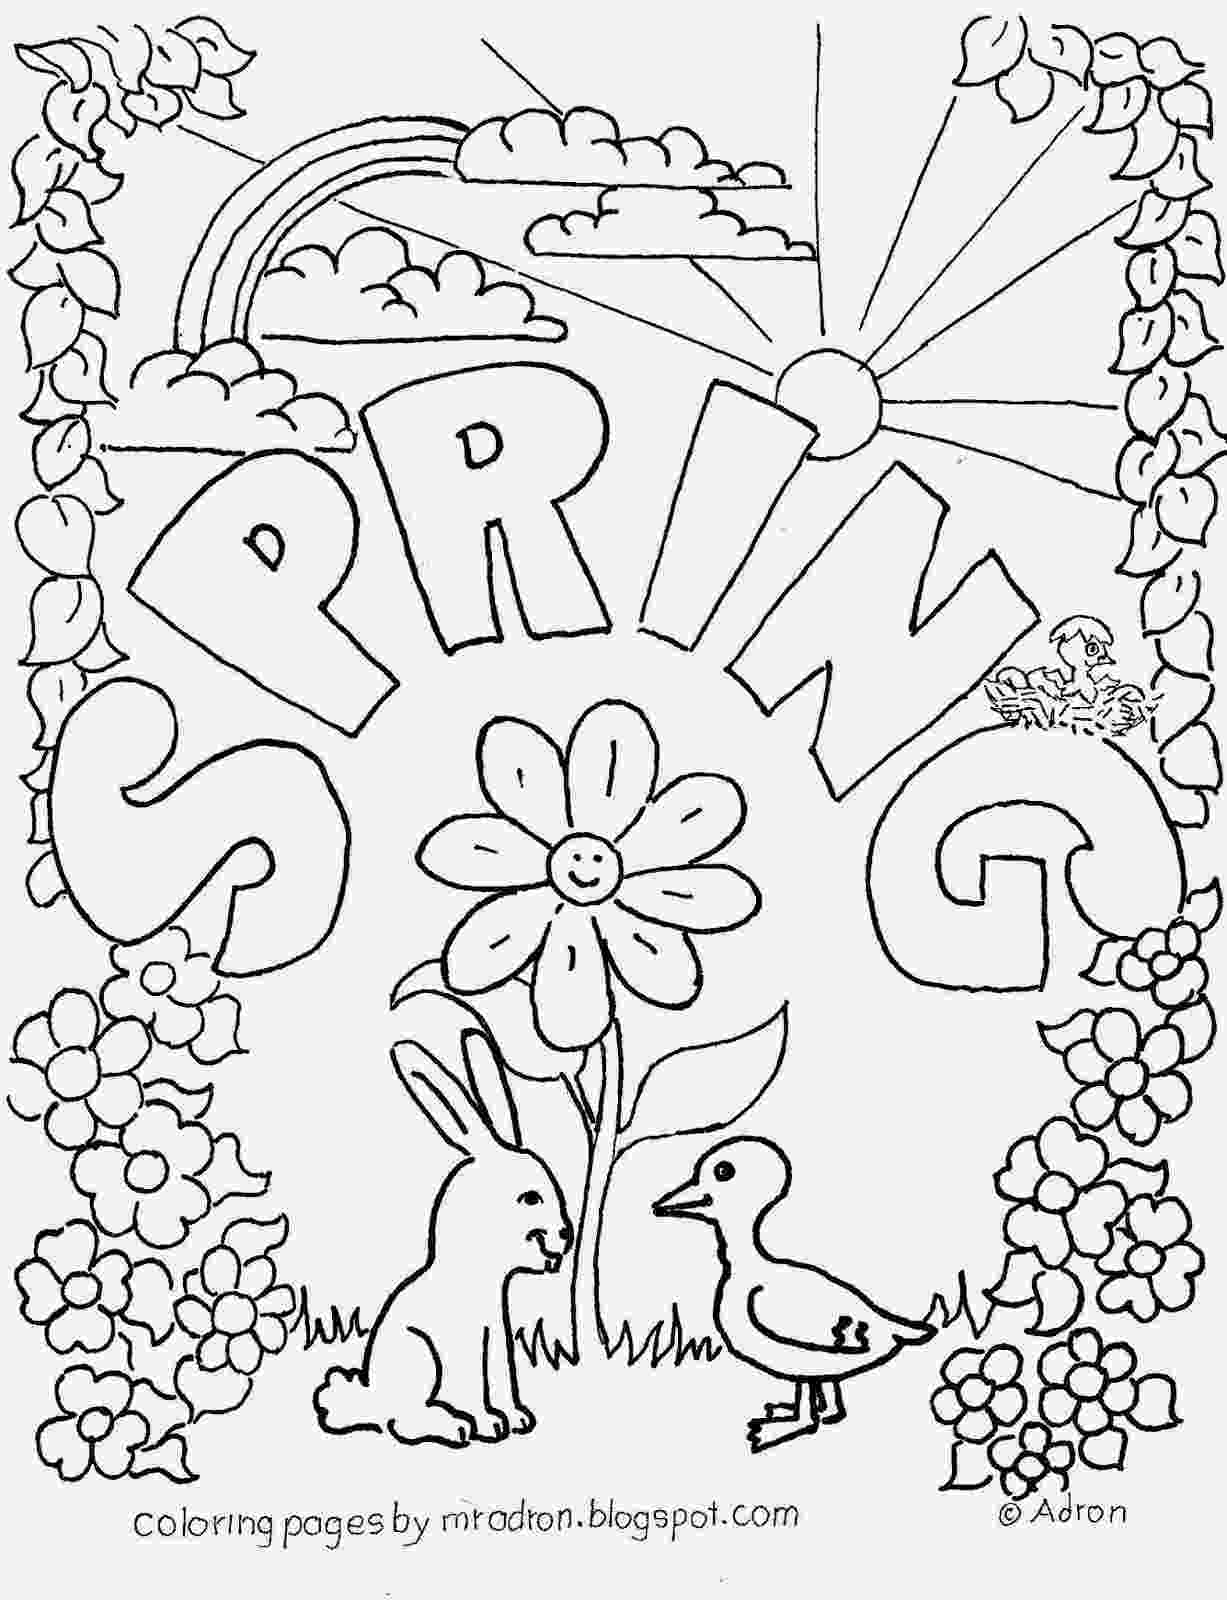 coloring pages for spring spring coloring pages best coloring pages for kids coloring for spring pages